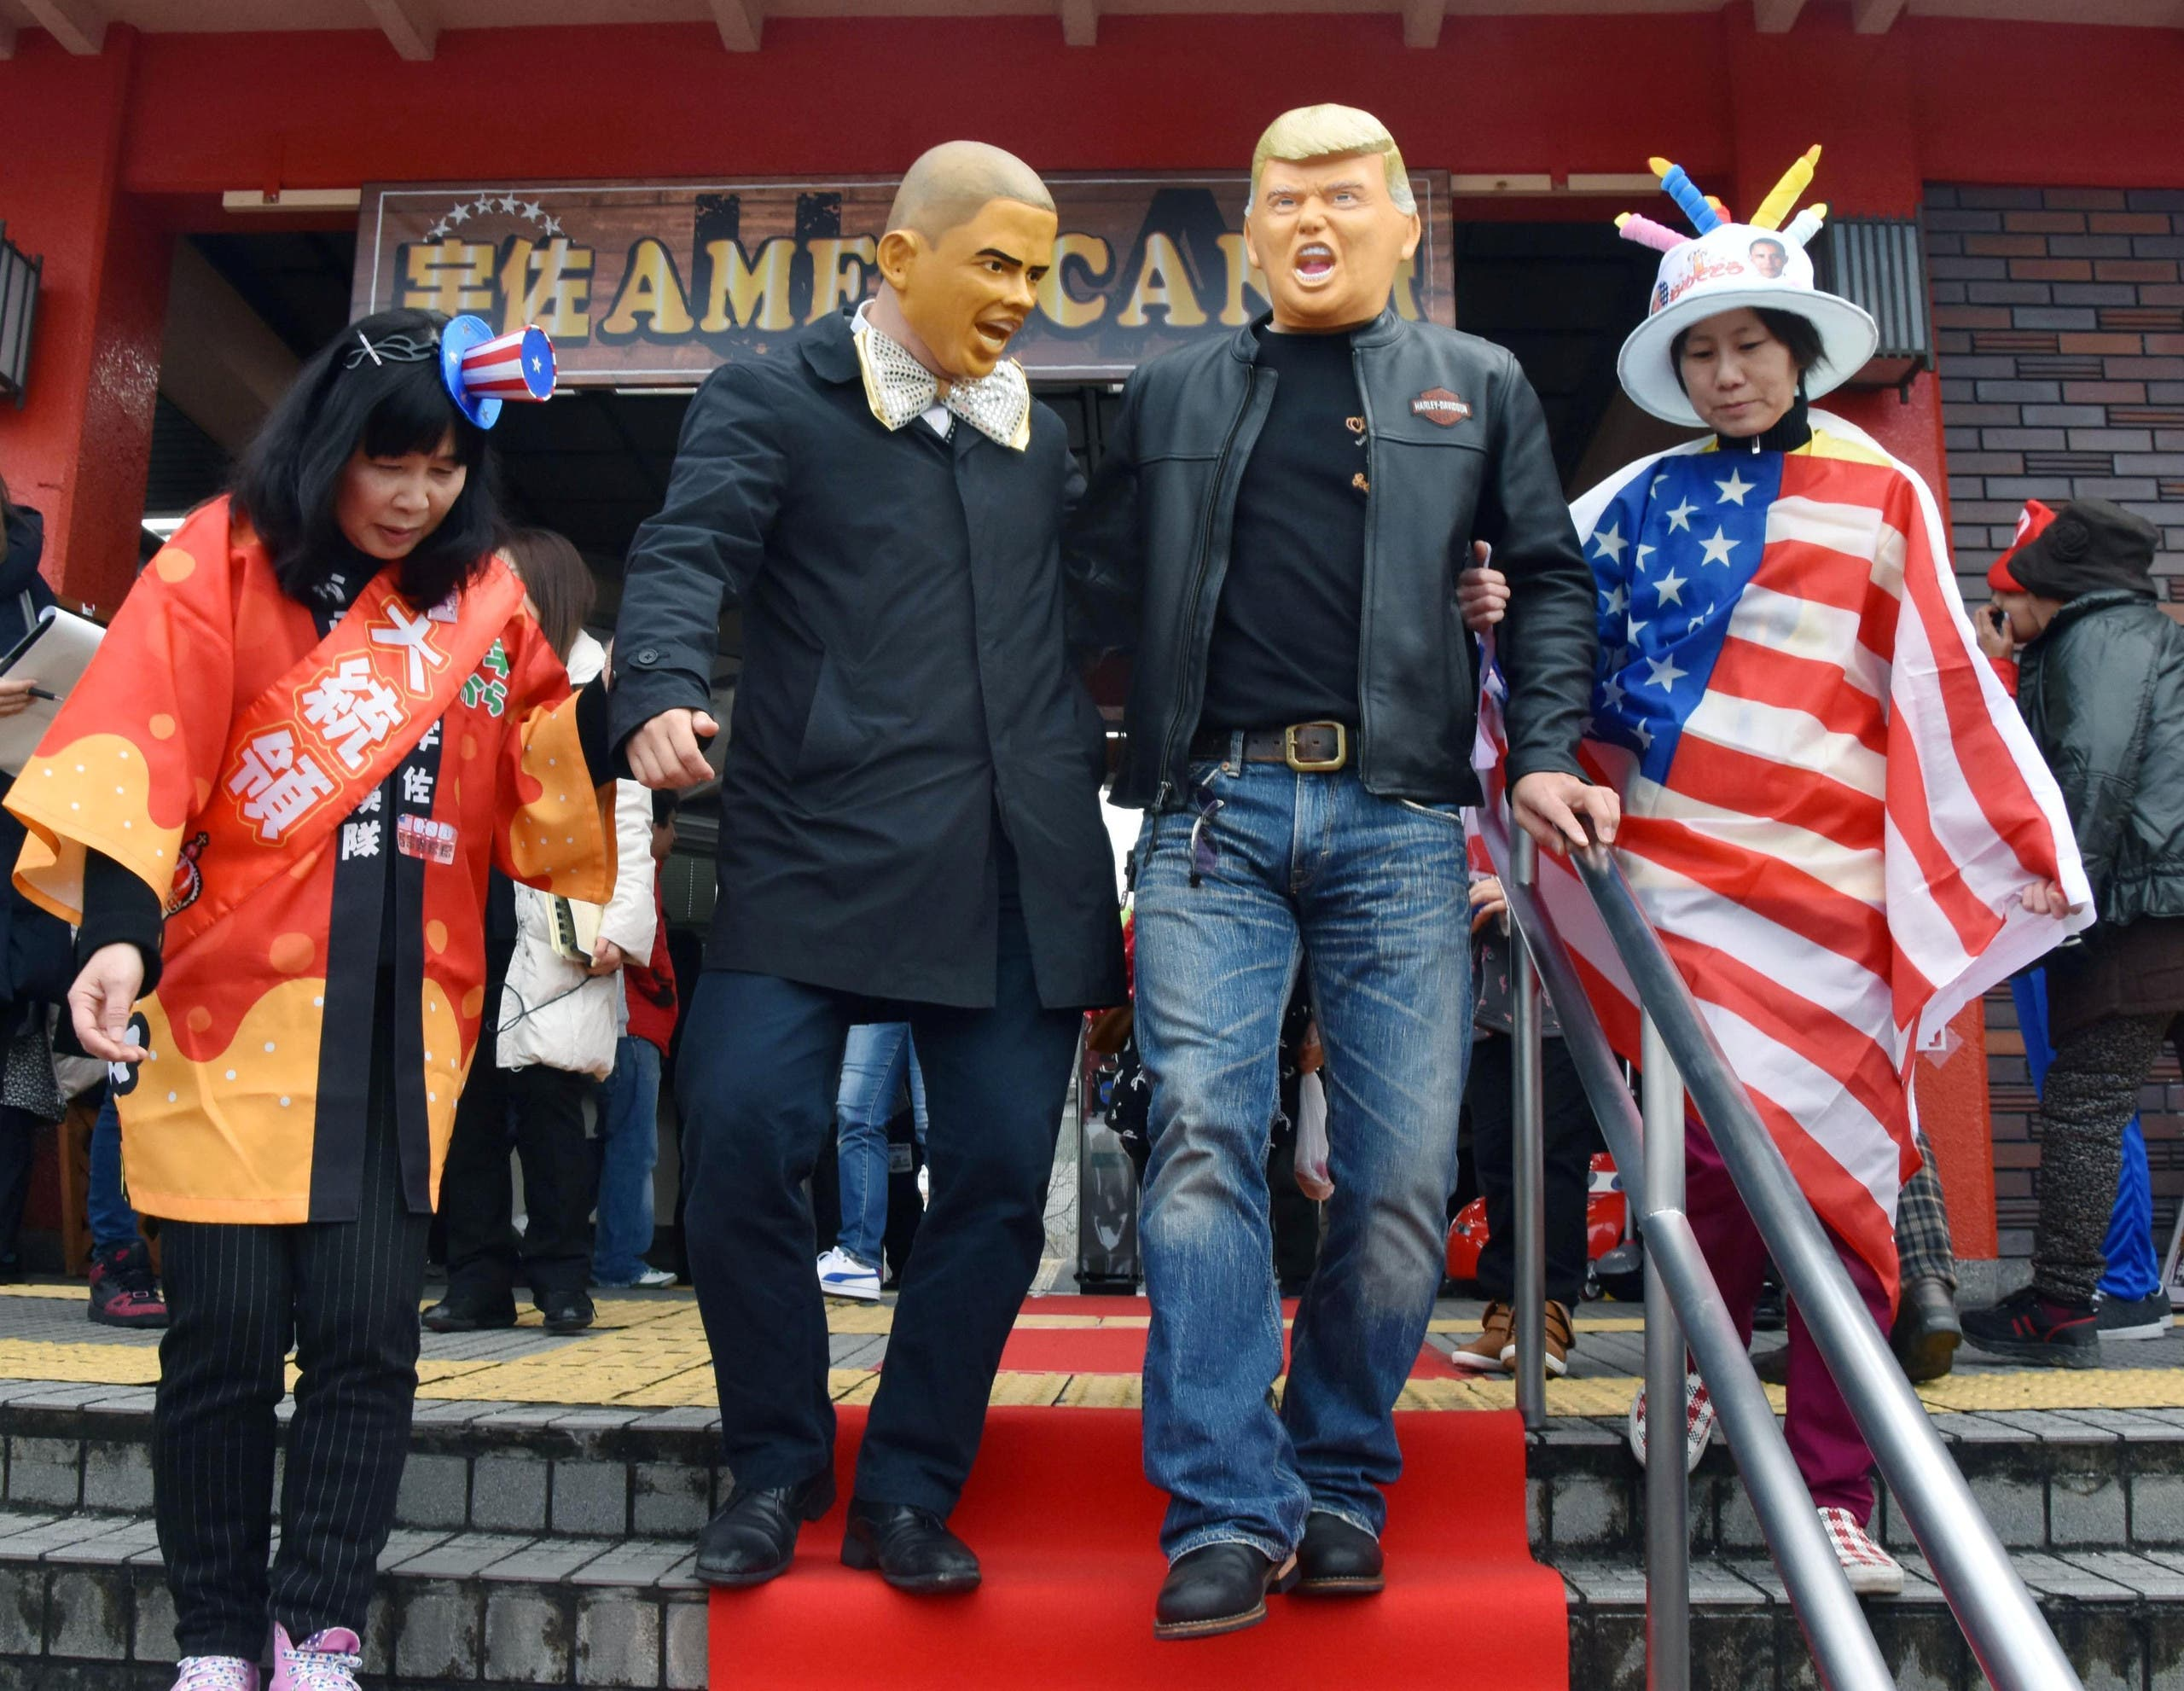 People wearing Barack Obama and Donald Trump masks walk down the stairs at JR Usa Station in the city of Usa in Oita Prefecture, southwestern Japan, in this photo taken by Kyodo on January 21, 2017. (Reuters)